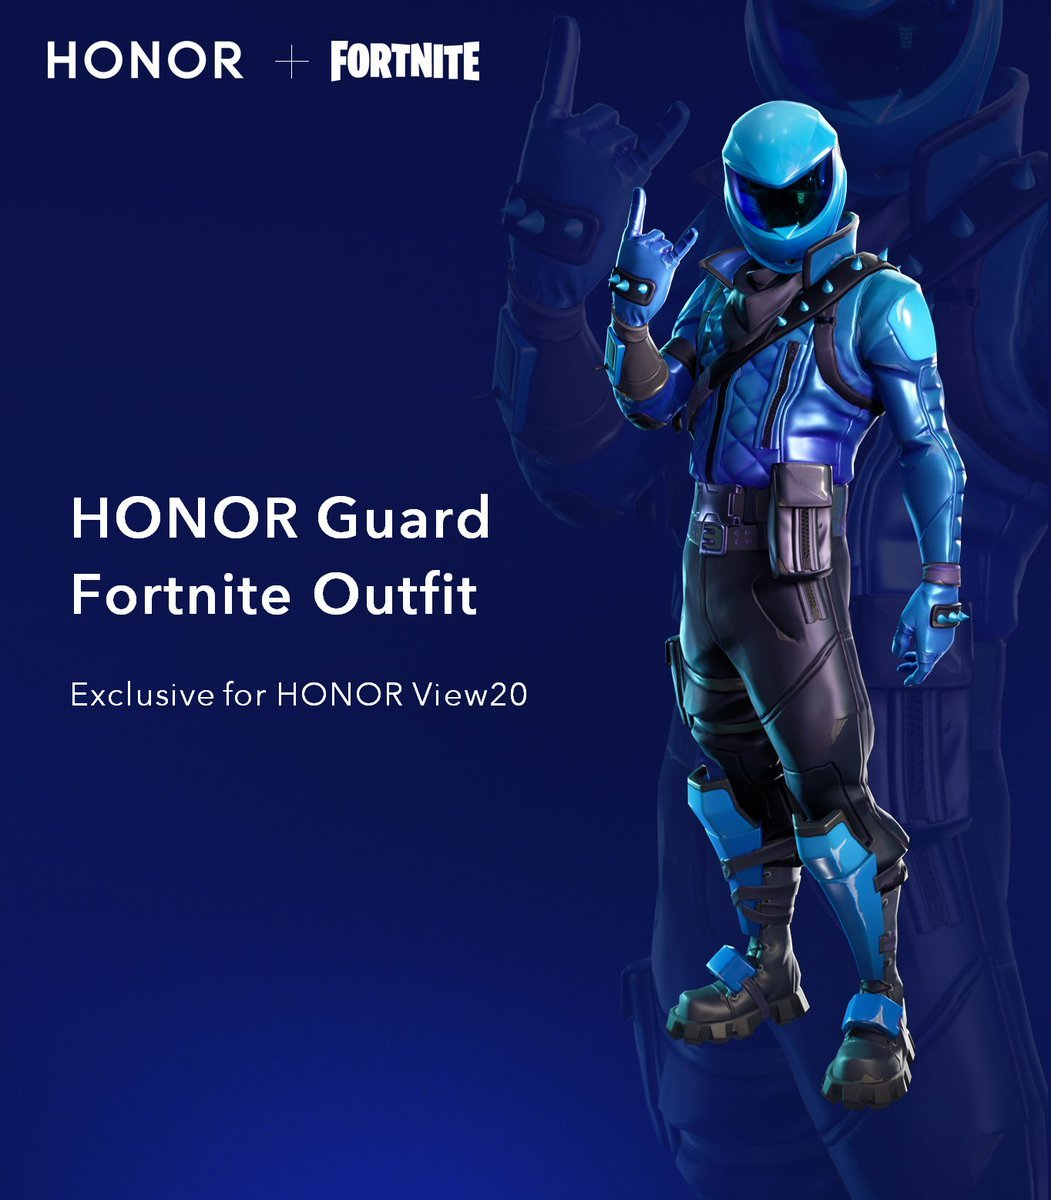 How To Get Honor Guard View 20 Exclusive Fortnite Skin - honor guard view 20 fortnite